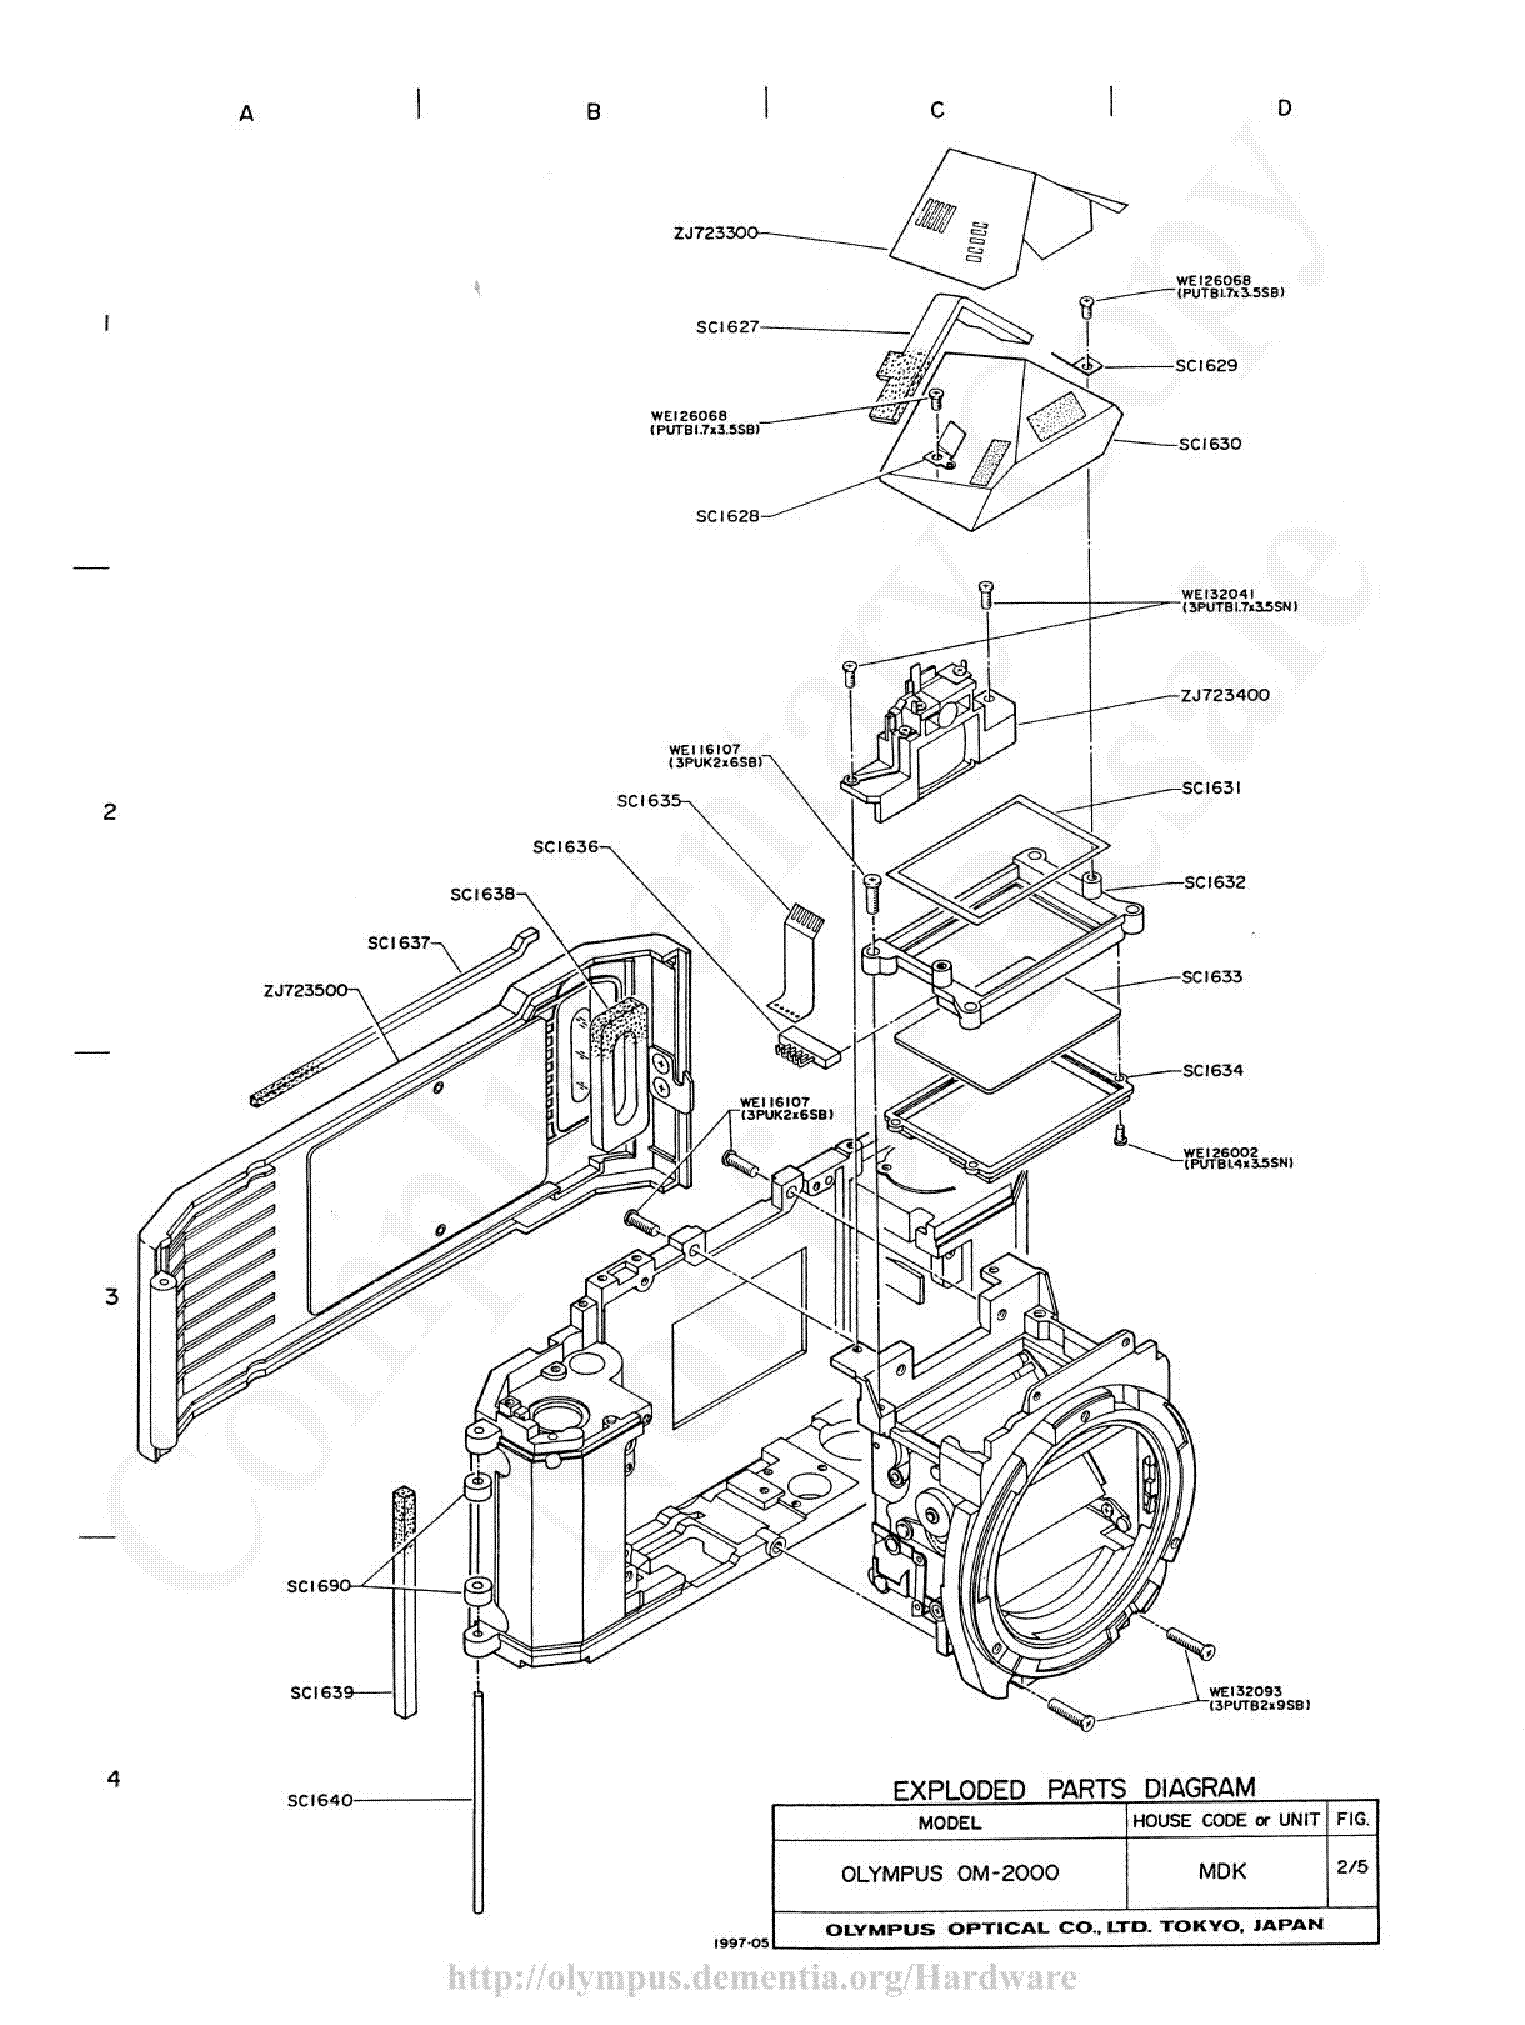 OLYMPUS OM-2000 EXPLODED PARTS DIAGRAM Service Manual